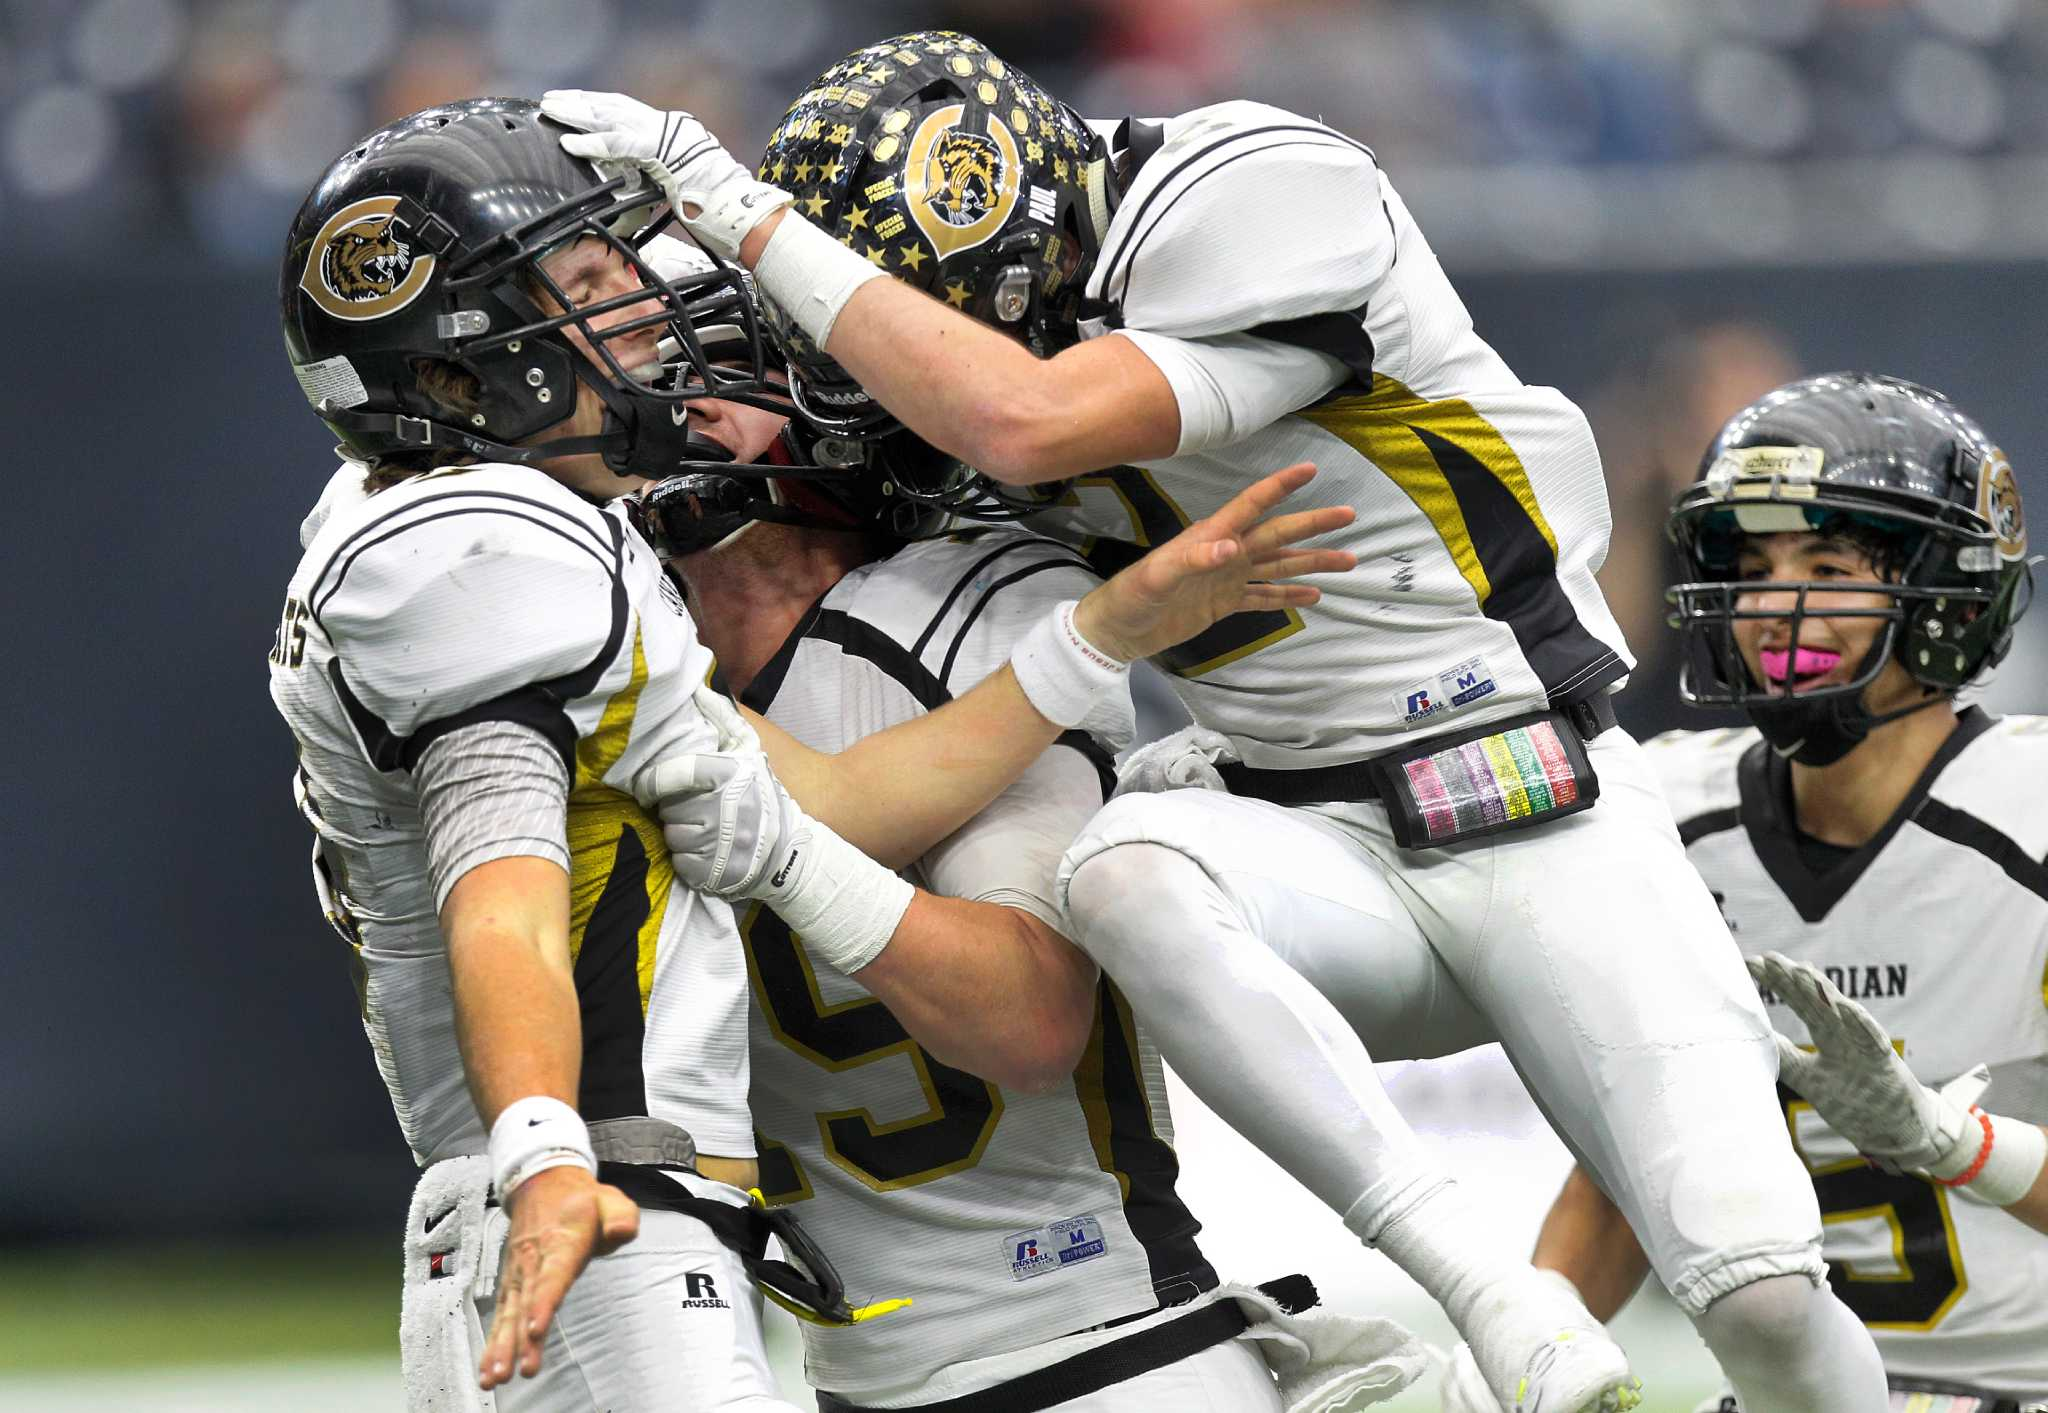 Canadian Romps Past Refugio To Repeat As Class 2a Division I Champs